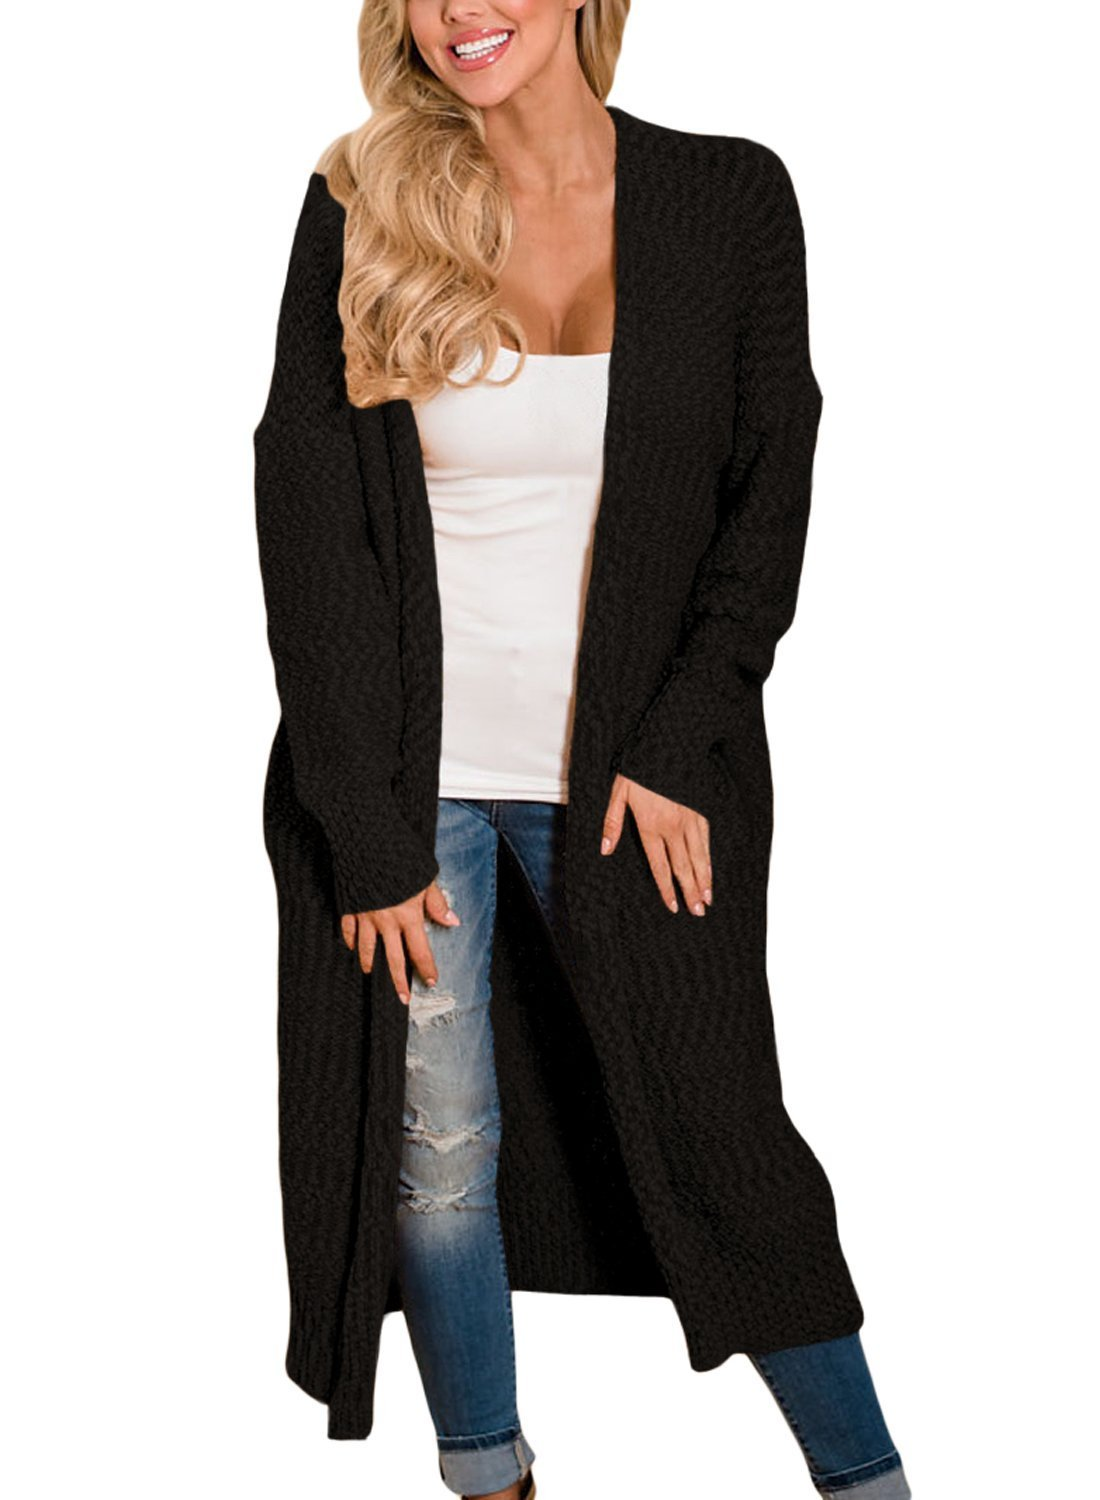 Dokotoo Womens Juniors Plus Size Fashion Oversized Casual Long Sleeve Cozy Knit Open Front Long Chunky Ribbed Cardigan Sweater with Pockets Black X-Large